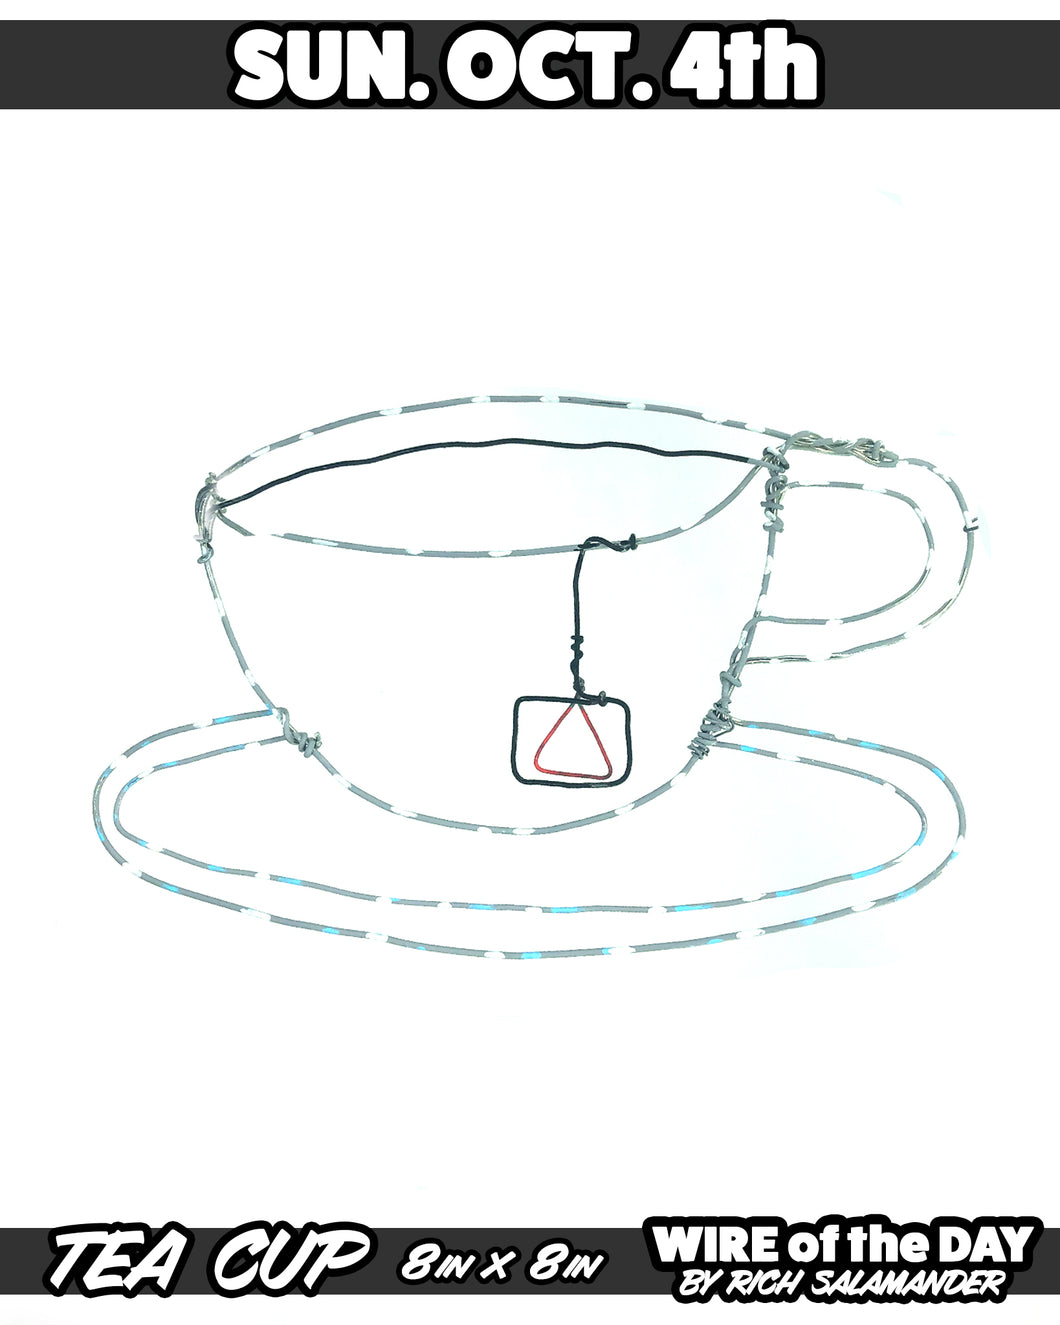 WIRE of the DAY TEA CUP